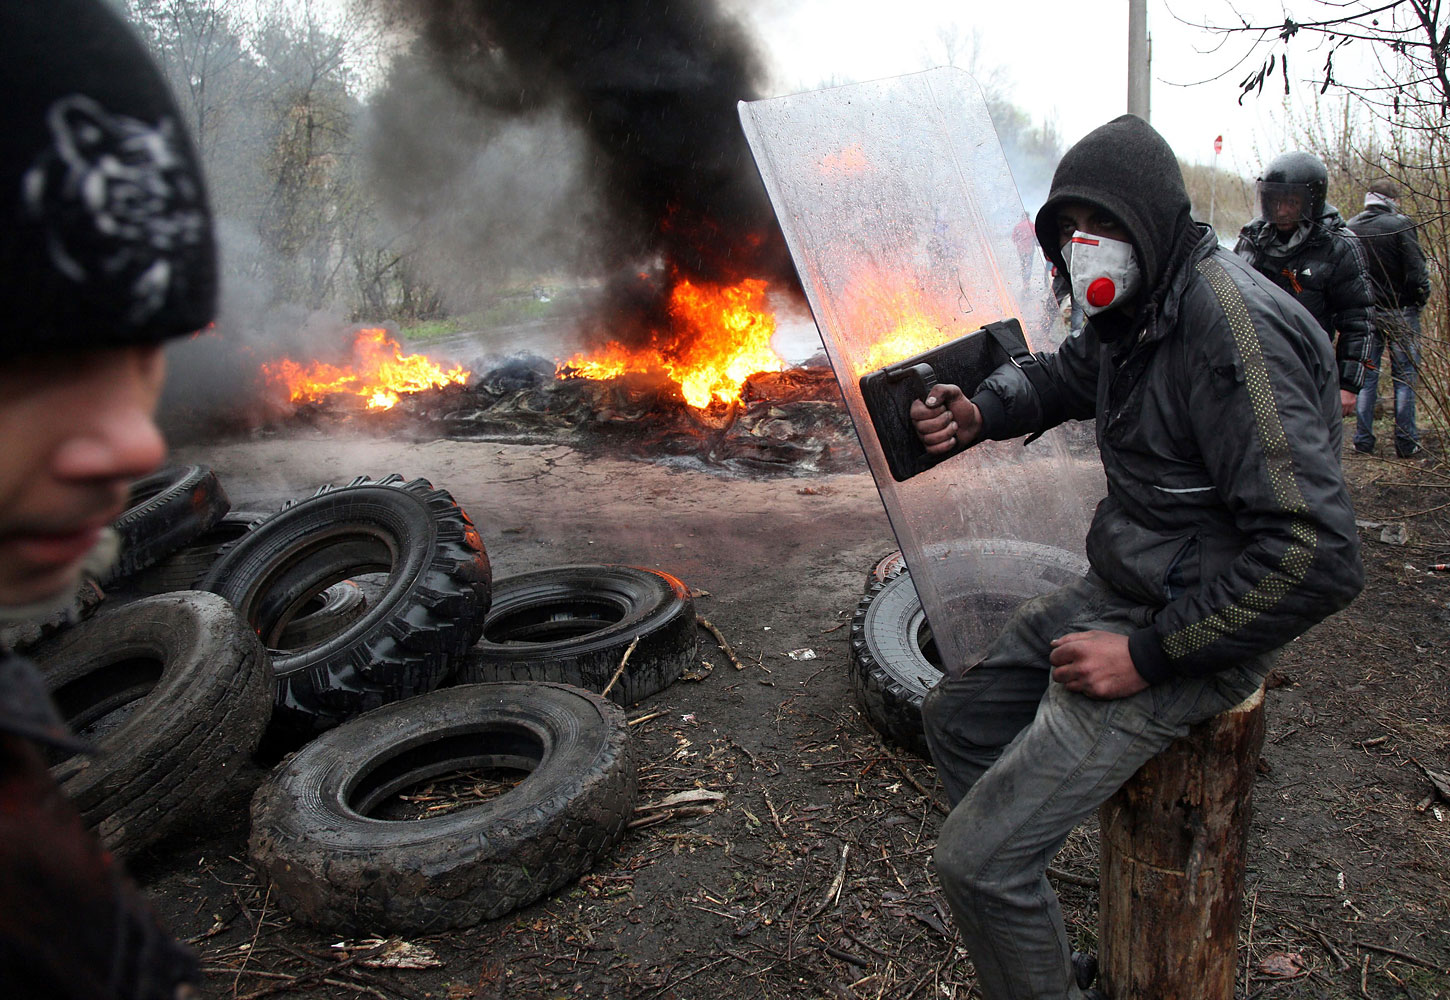 Pro-Russian protesters burn tires on the outskirts of the eastern Ukrainian city of Slovyansk on April 13, 2014